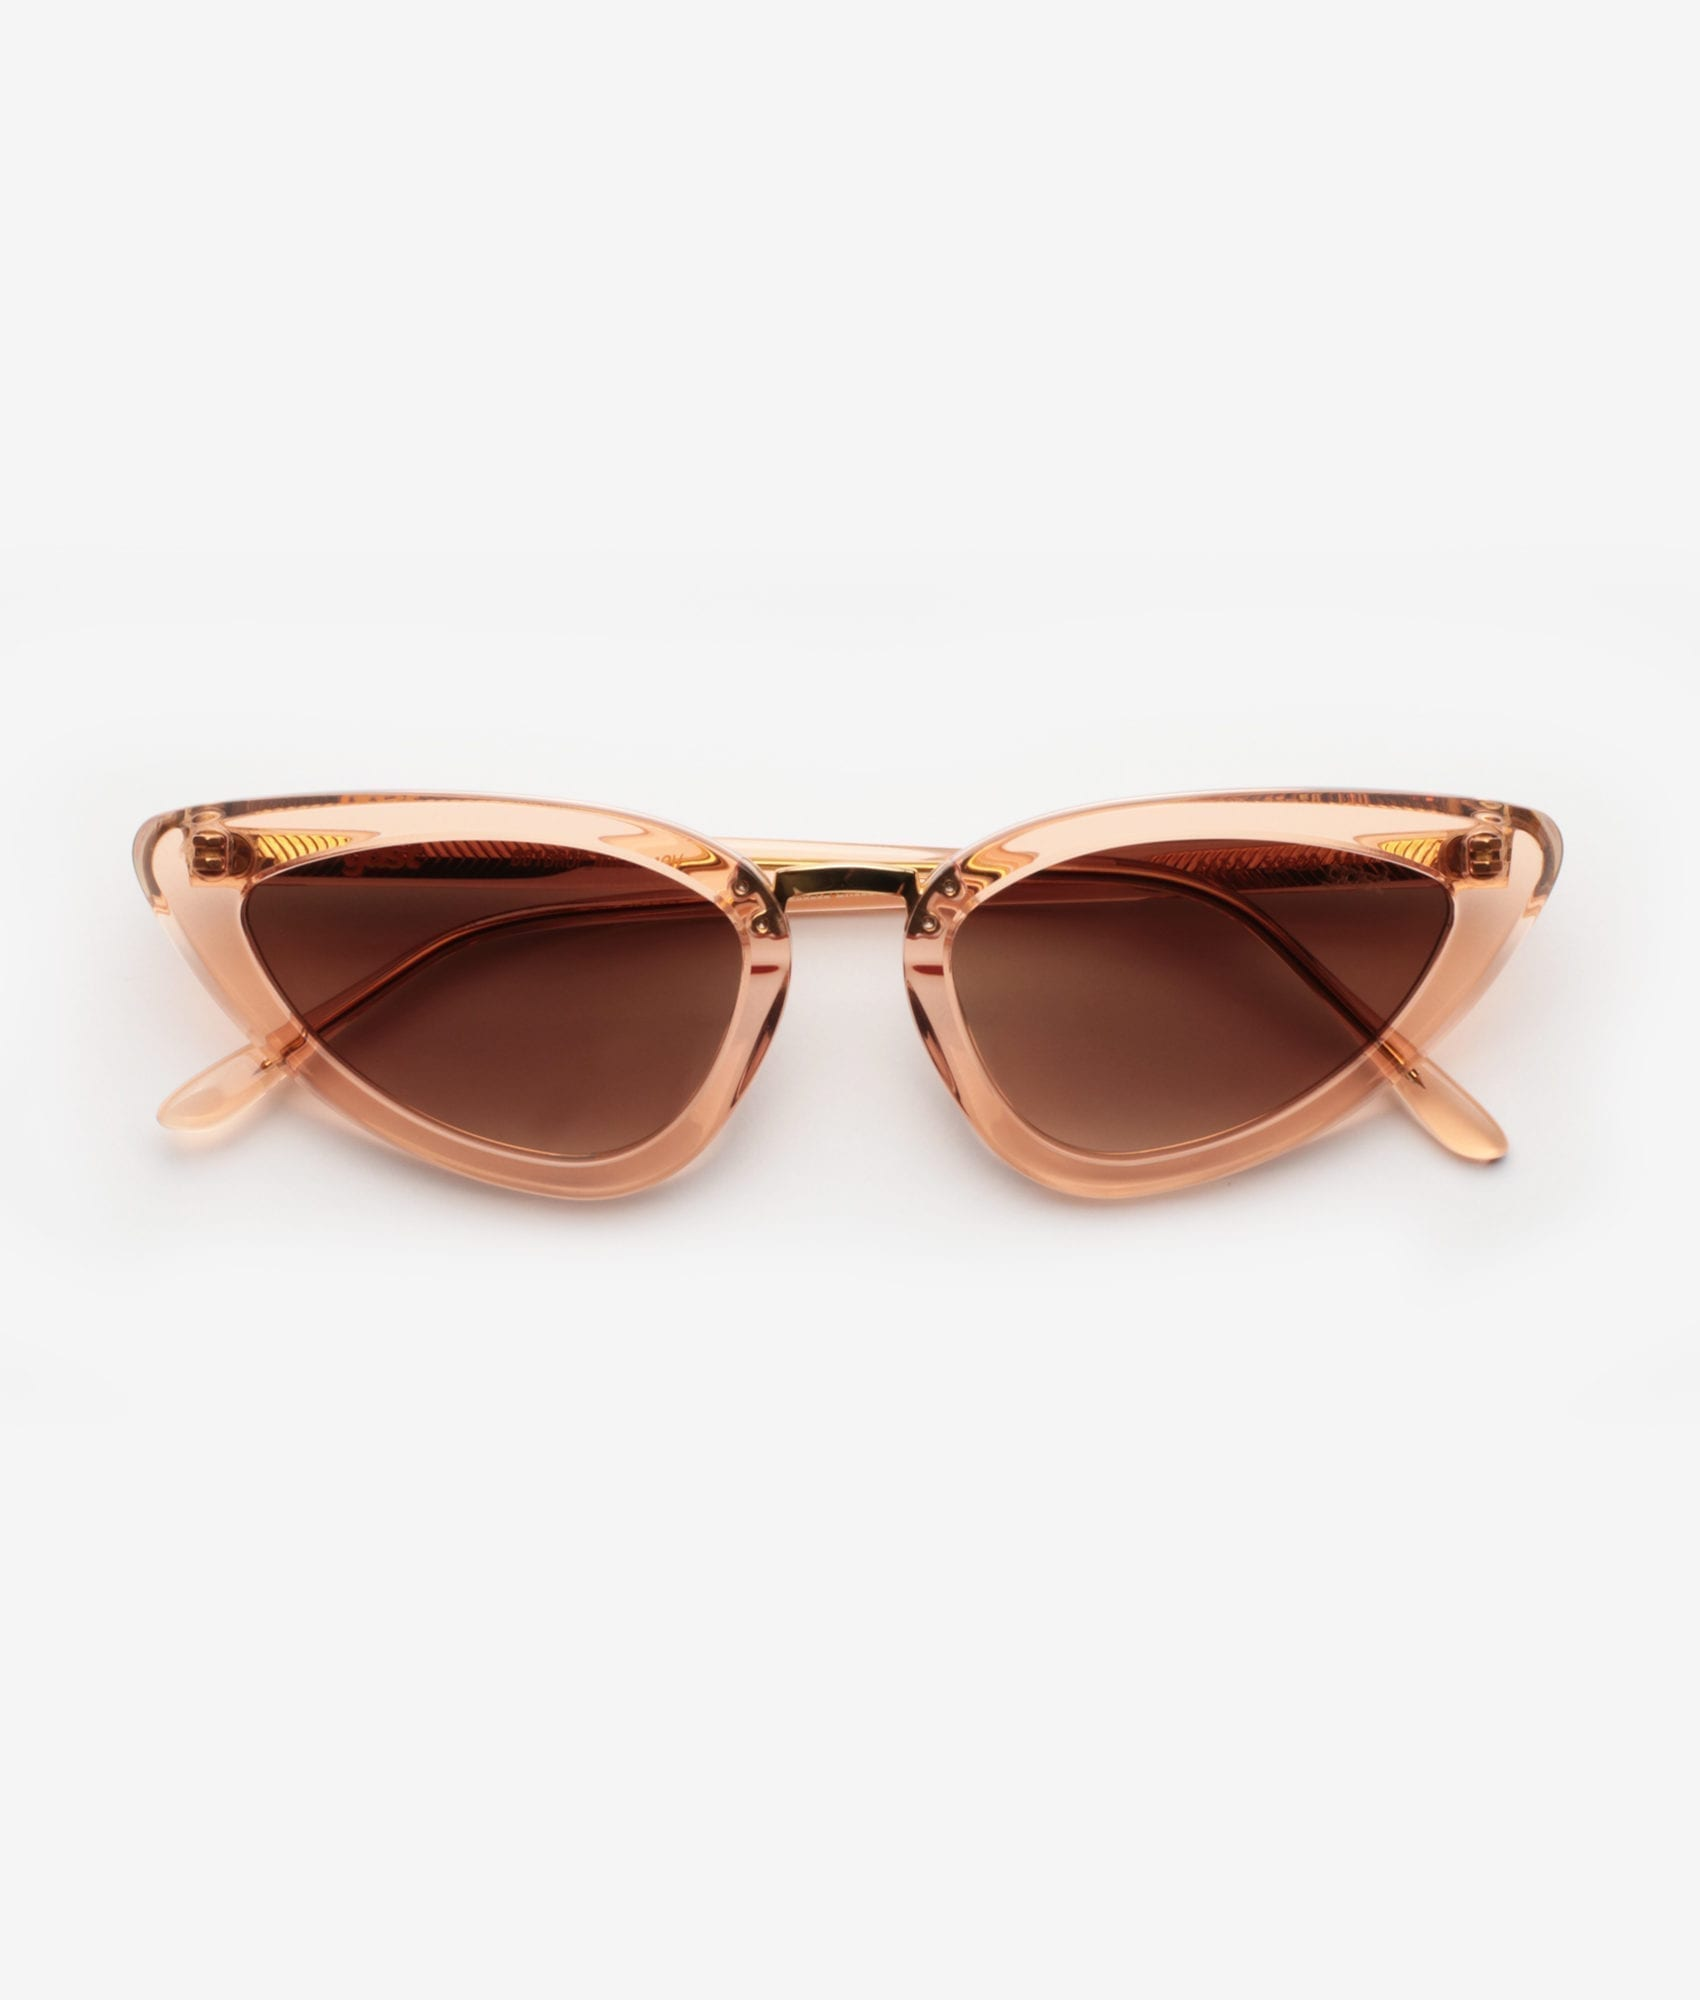 VENTI144 Peach Gast Sunglasses